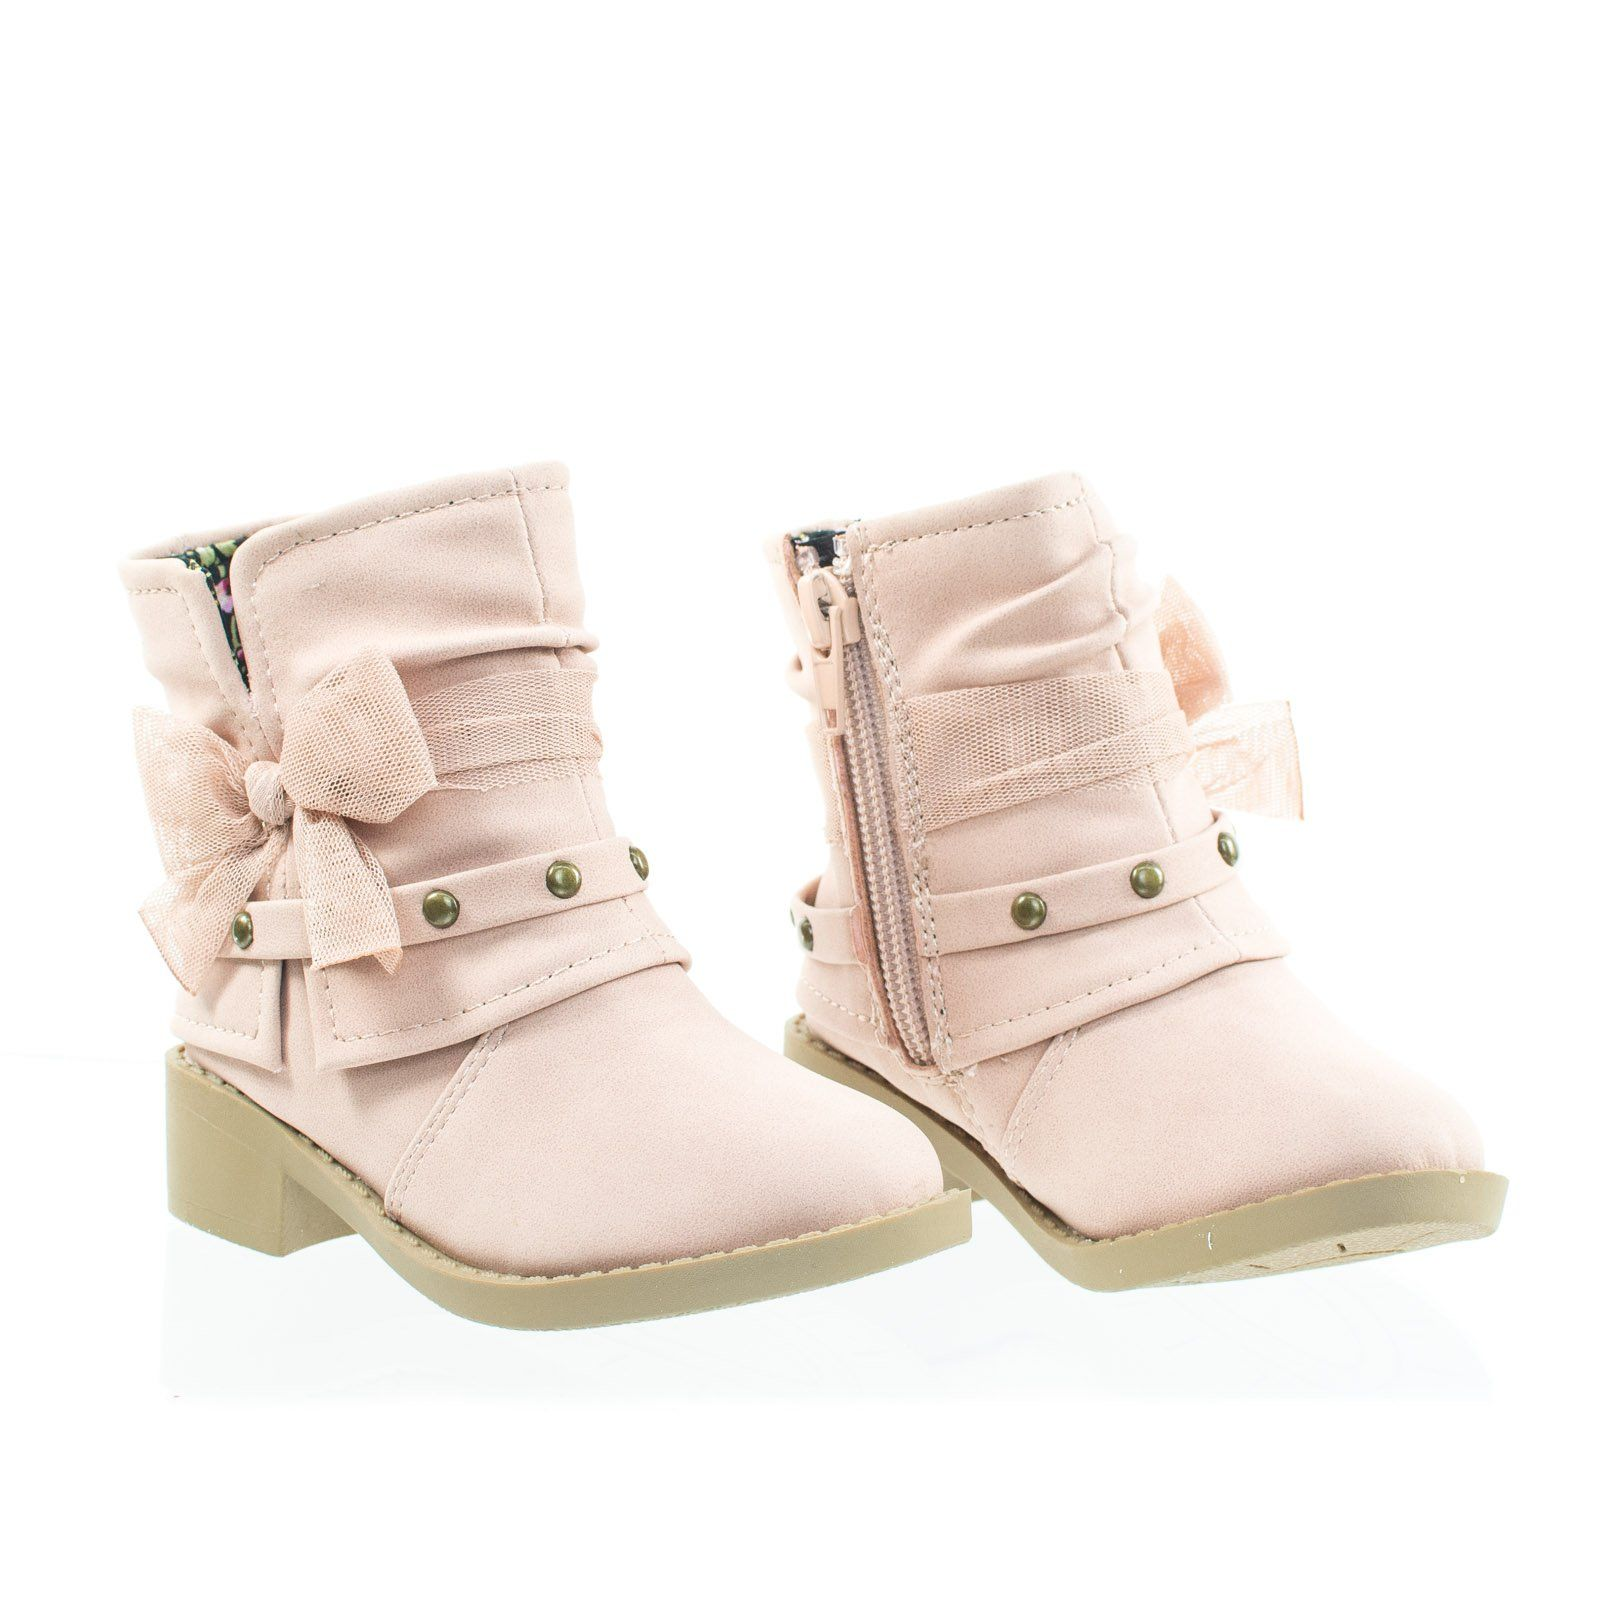 16ba7cabcdeef About This Shoes :Doll your baby girl up in these round toe ankle bootie  featuring outter side slit, layered shafts, decorative belt with metal stud  detail, ...